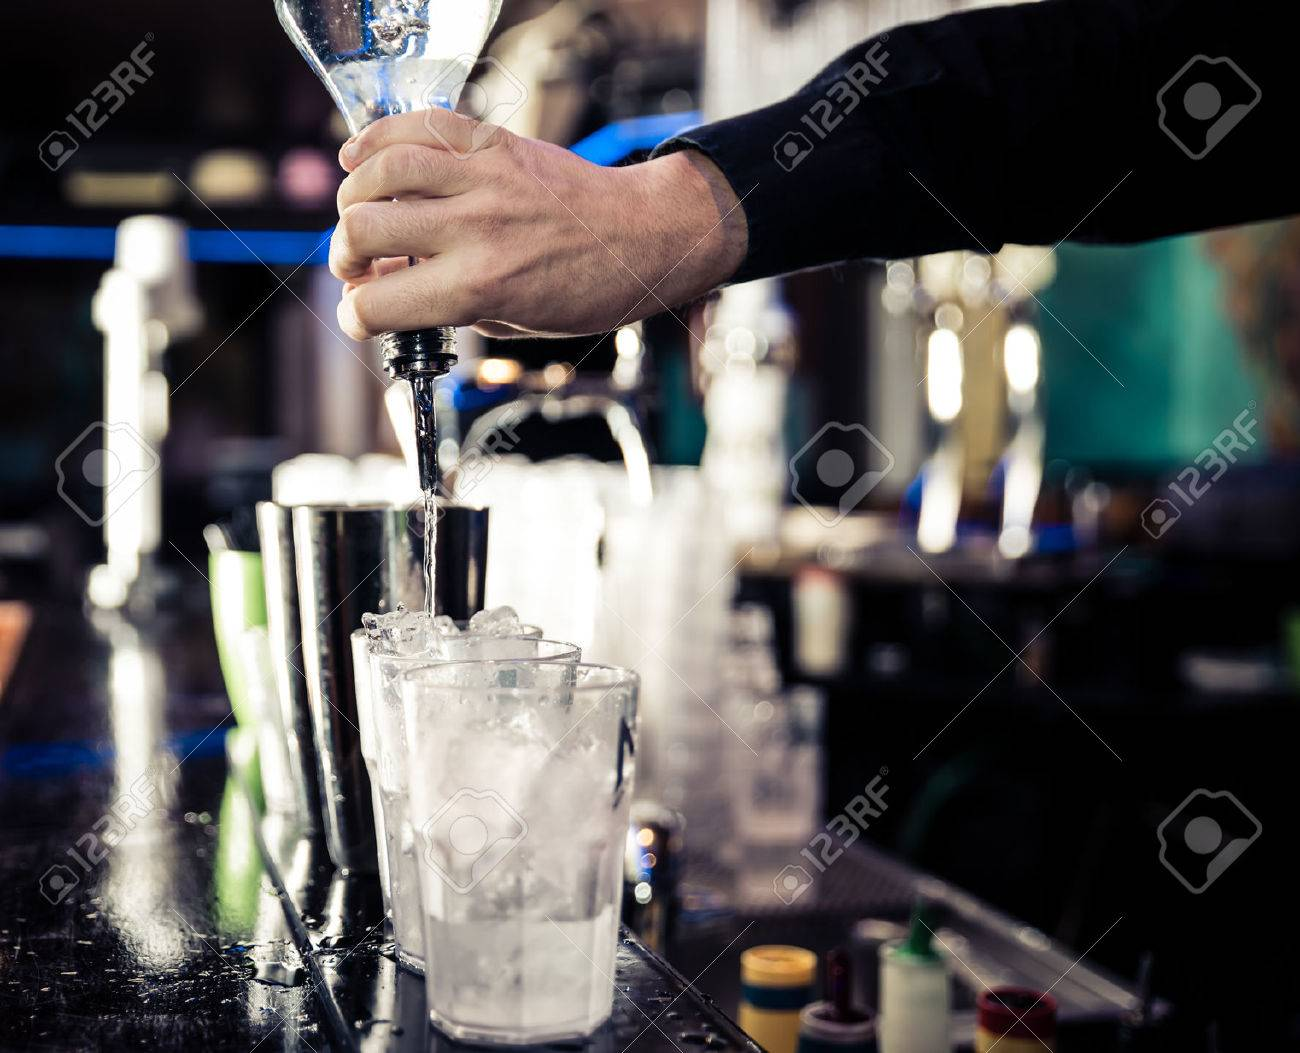 bartending stock photos images royalty free bartending images and